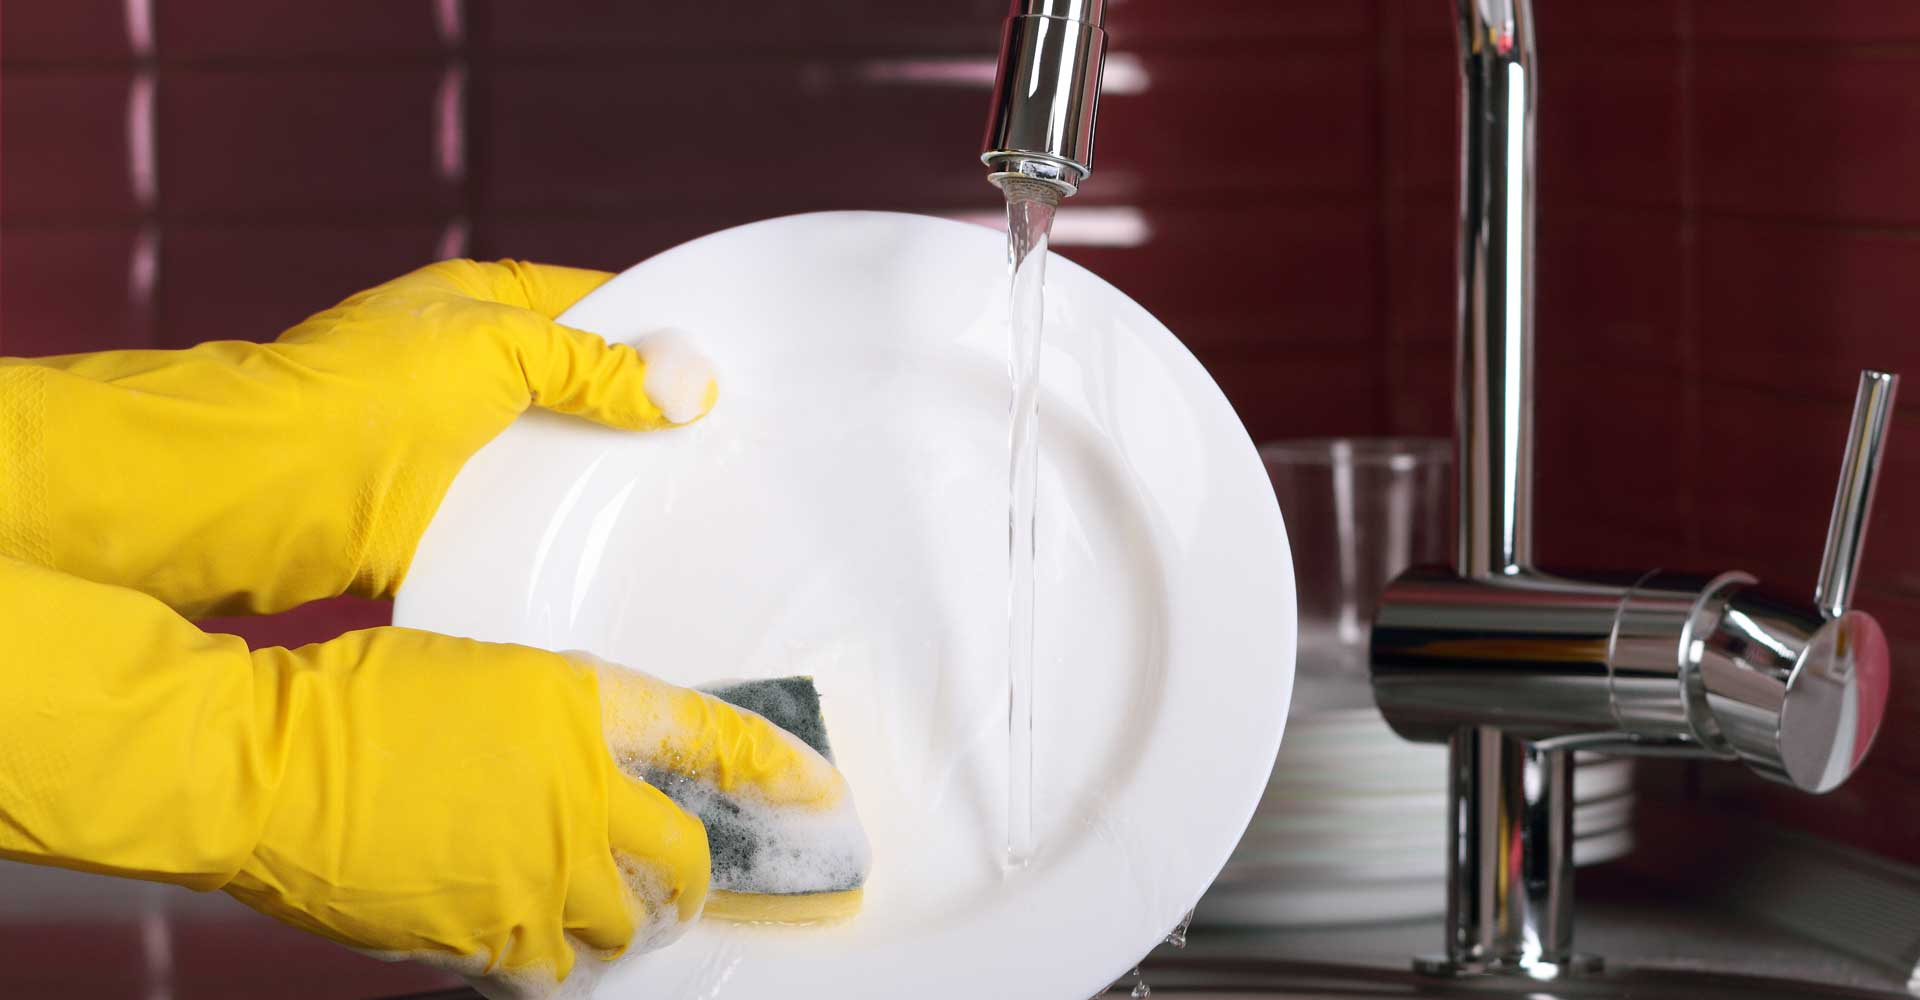 Industrial Cleaning & Hygiene Chemicals